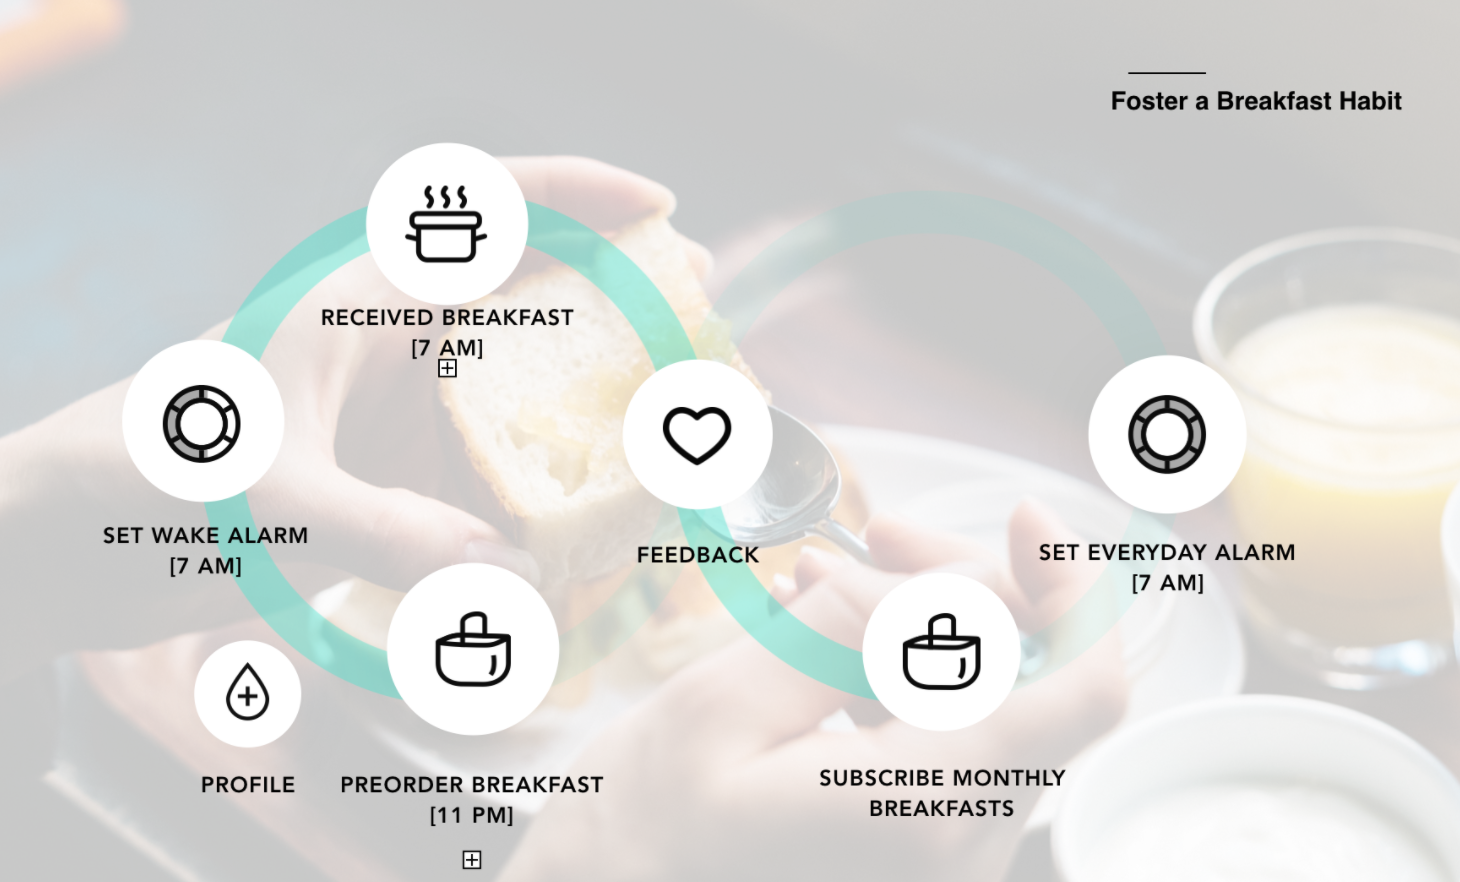 Morning Alarm X Breakfast Delivery App  - An innovative Morning Alarm system that combines a breakfast delivery system with a smart alarm clock.